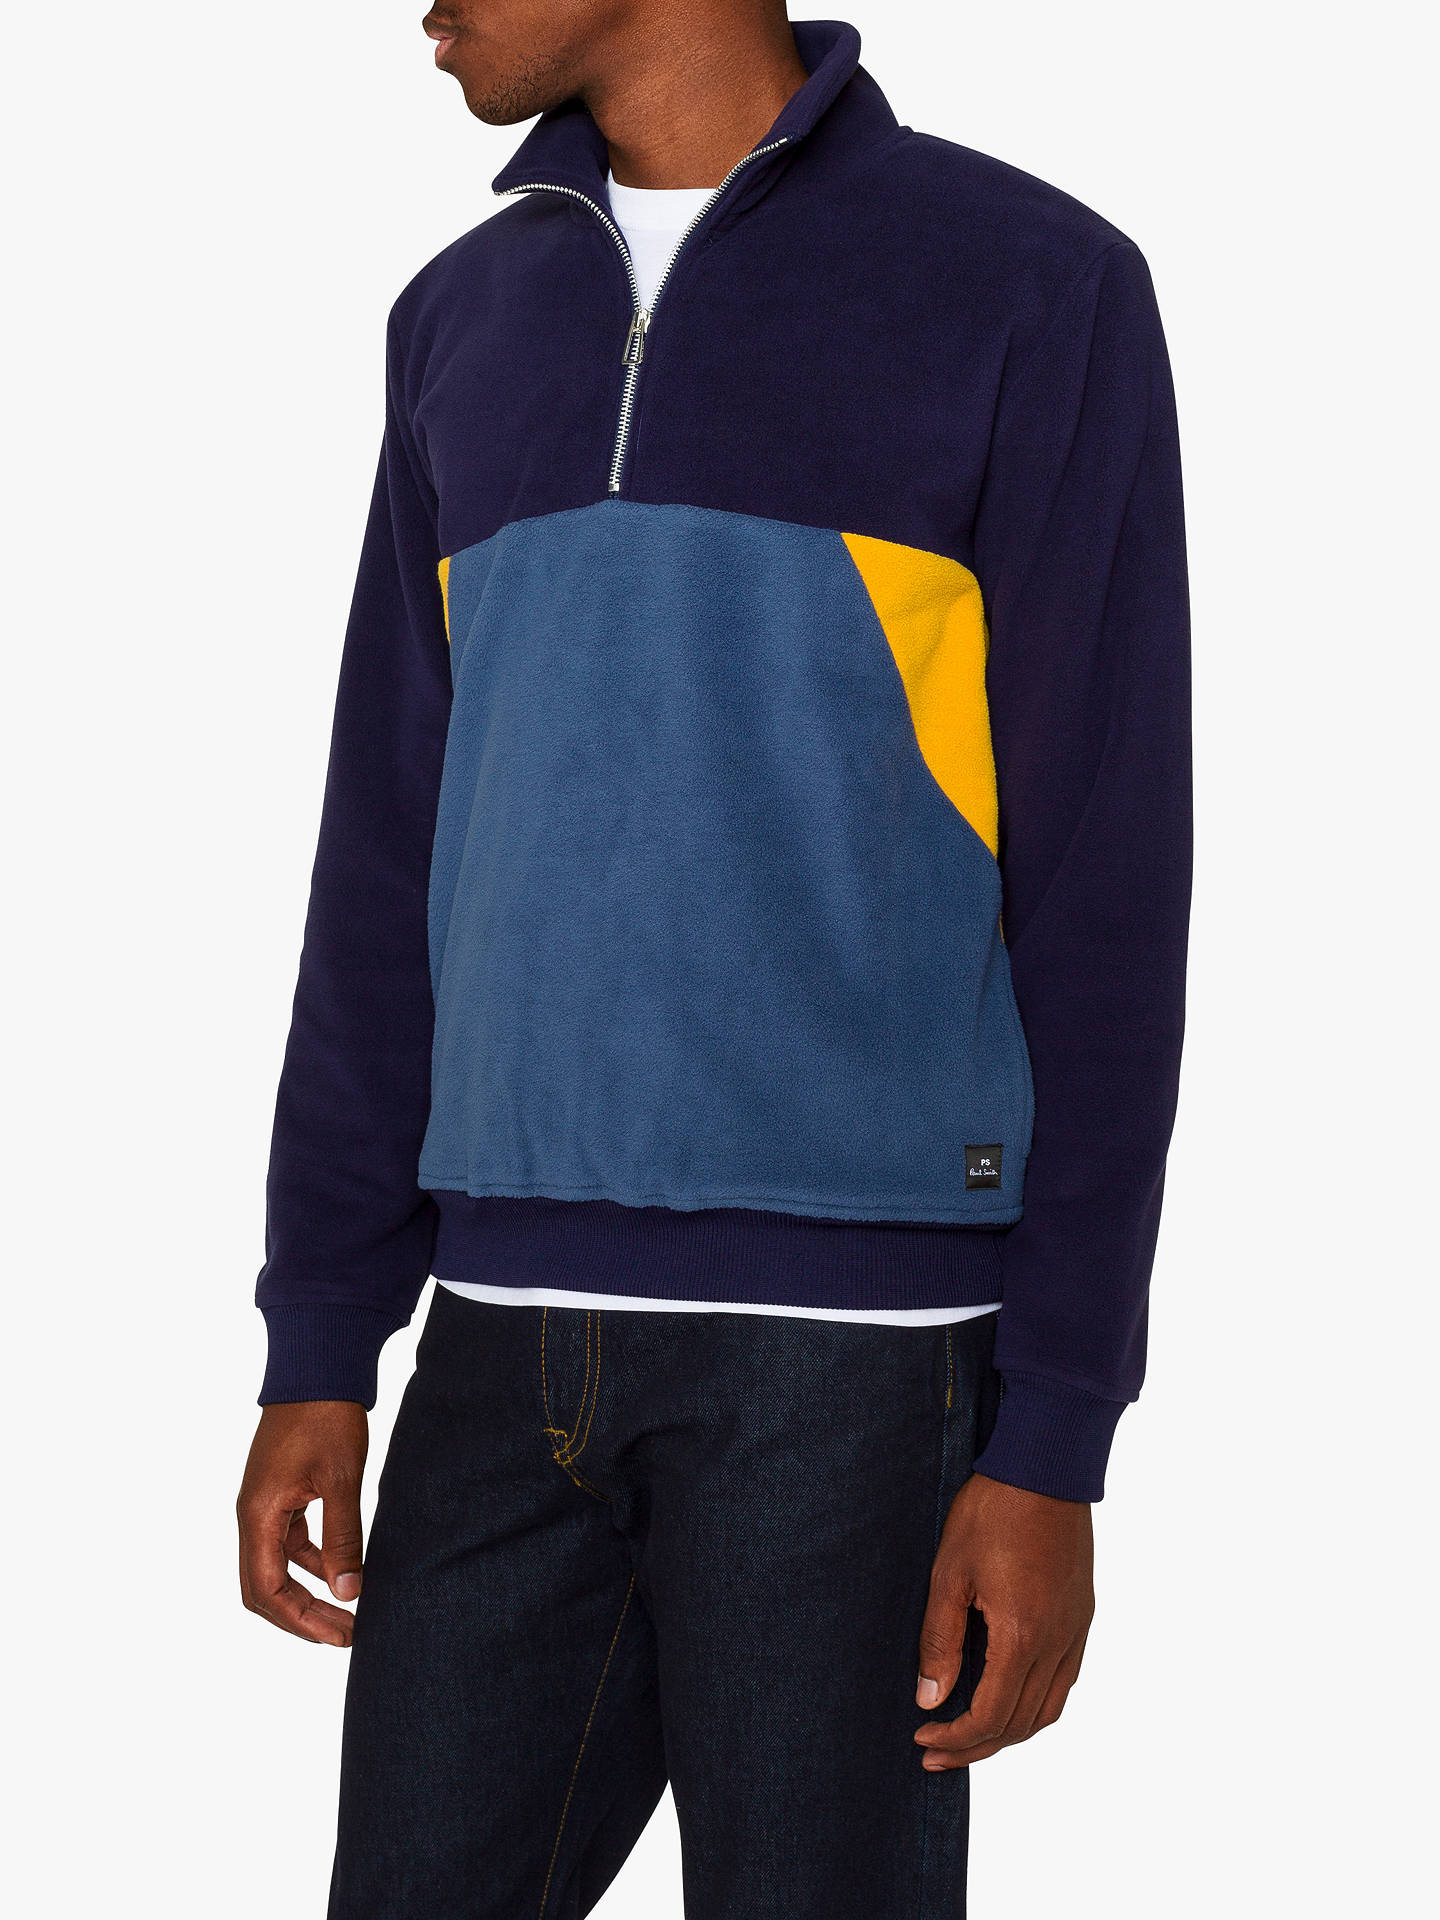 c9c3641d09 Buy PS Paul Smith Colour Block Half Zip Fleece Sweatshirt